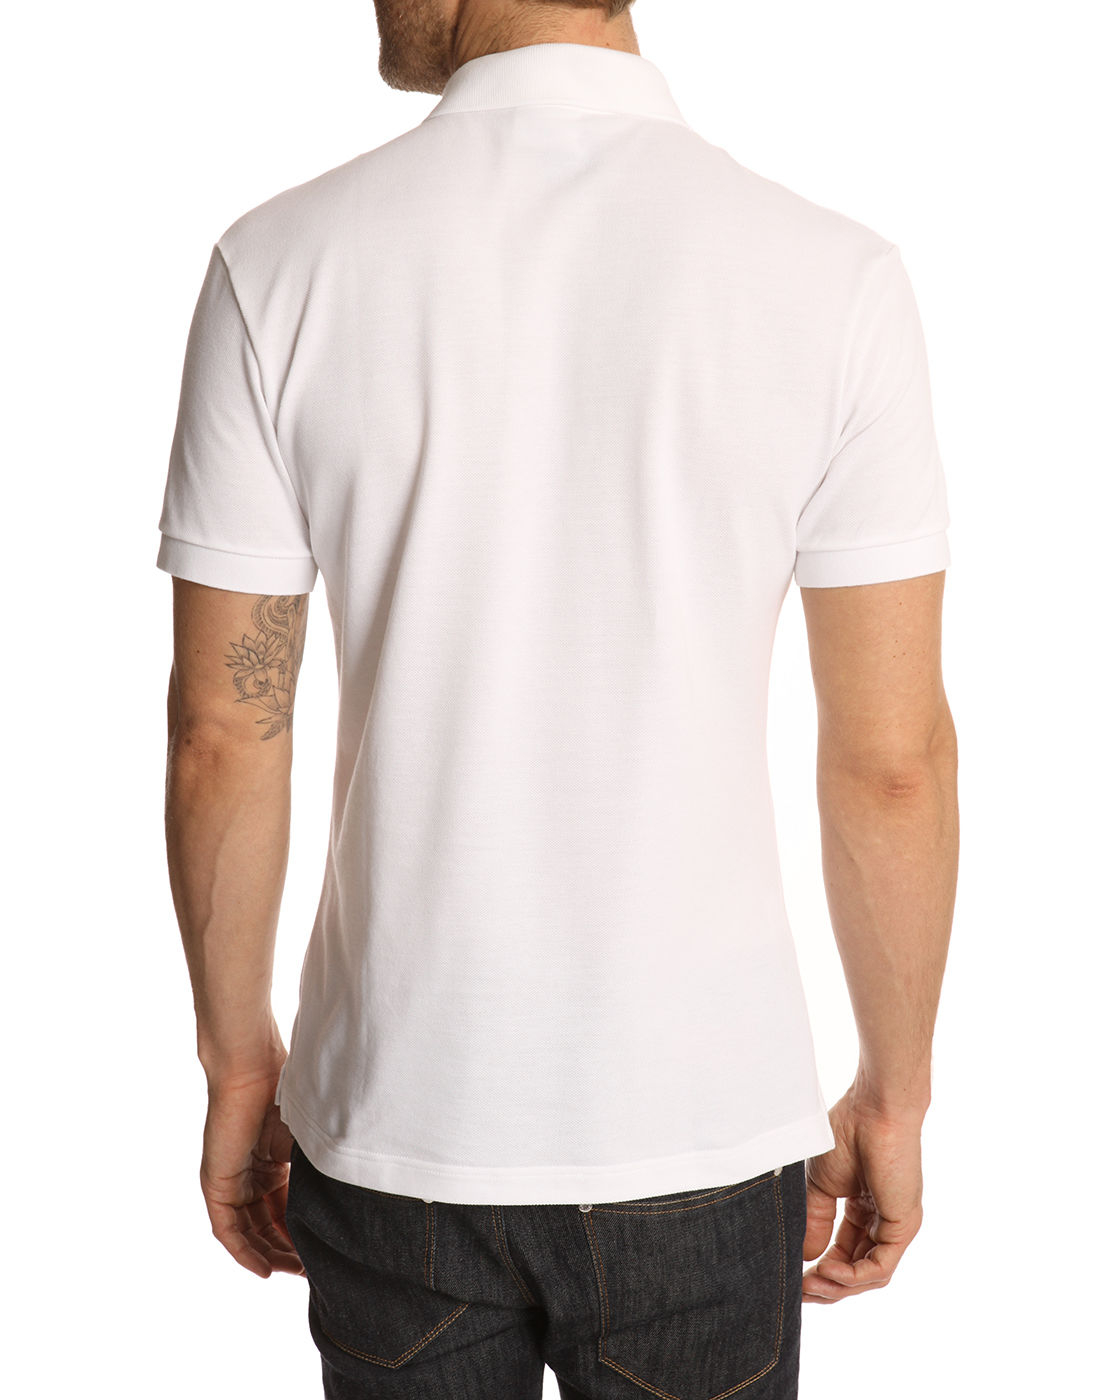 Lacoste white slim fit polo shirt in white for men lyst for White fitted polo shirts